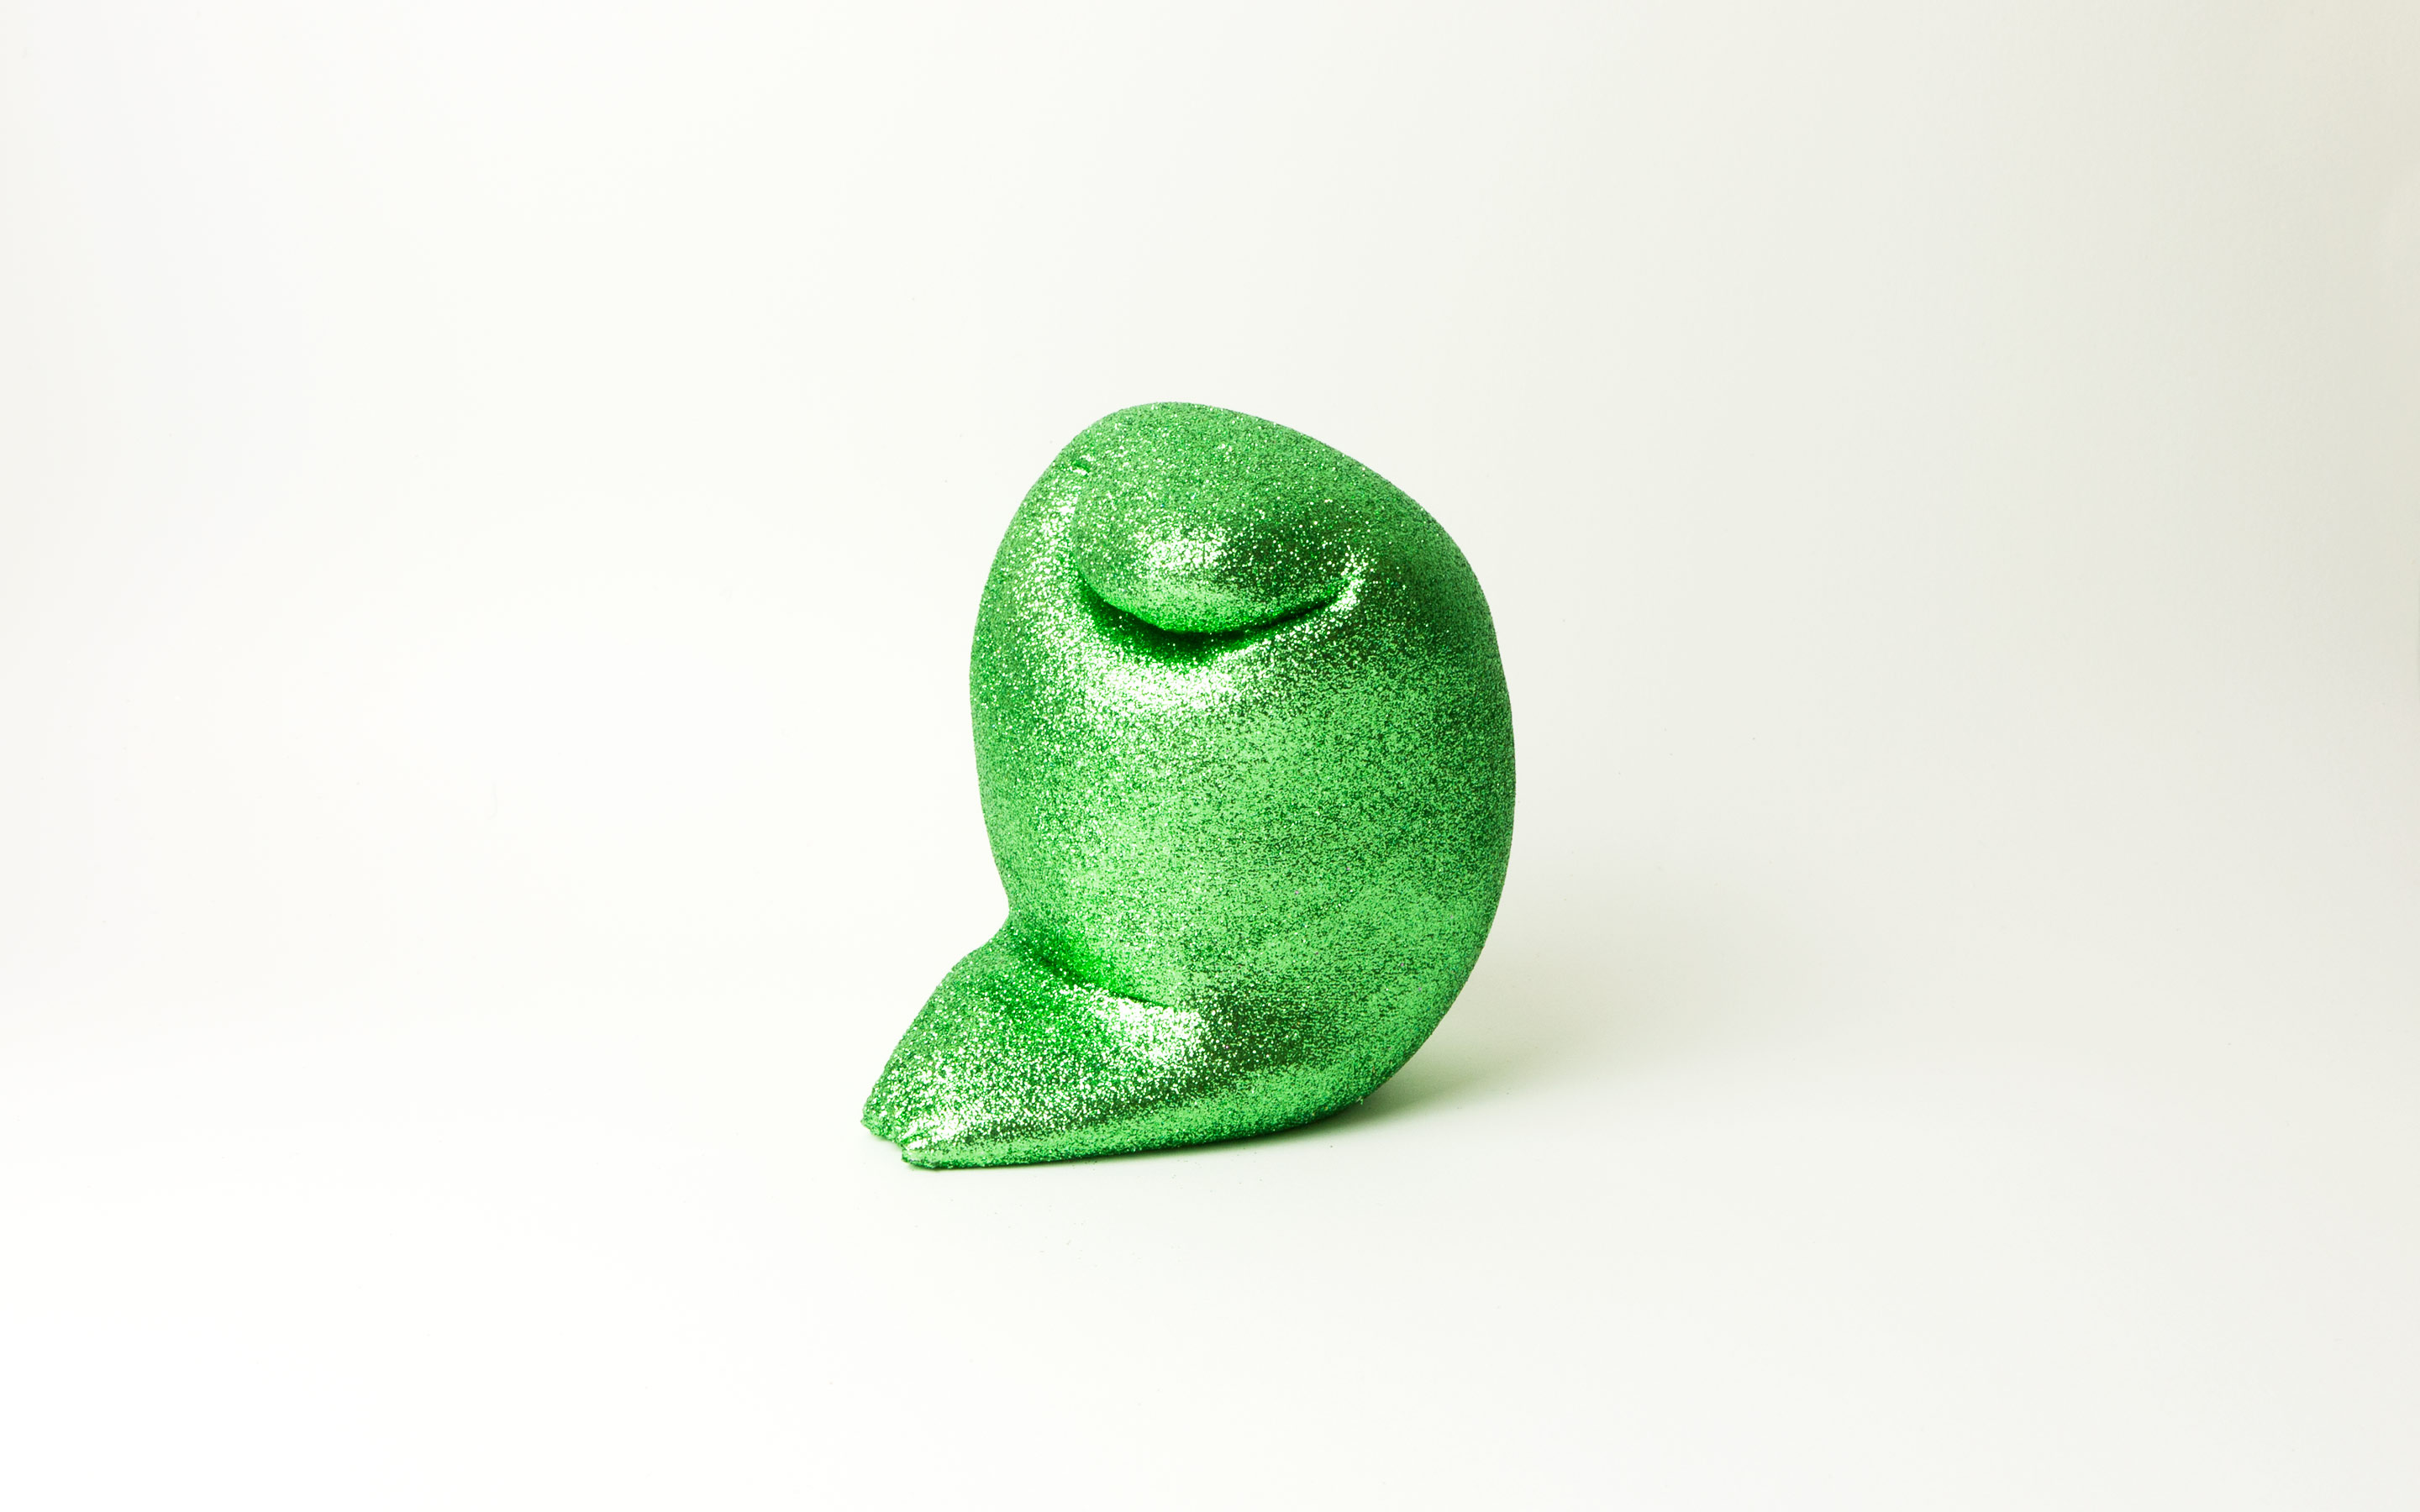 sc_2019_EmeraldGreenFigure_Take02_01